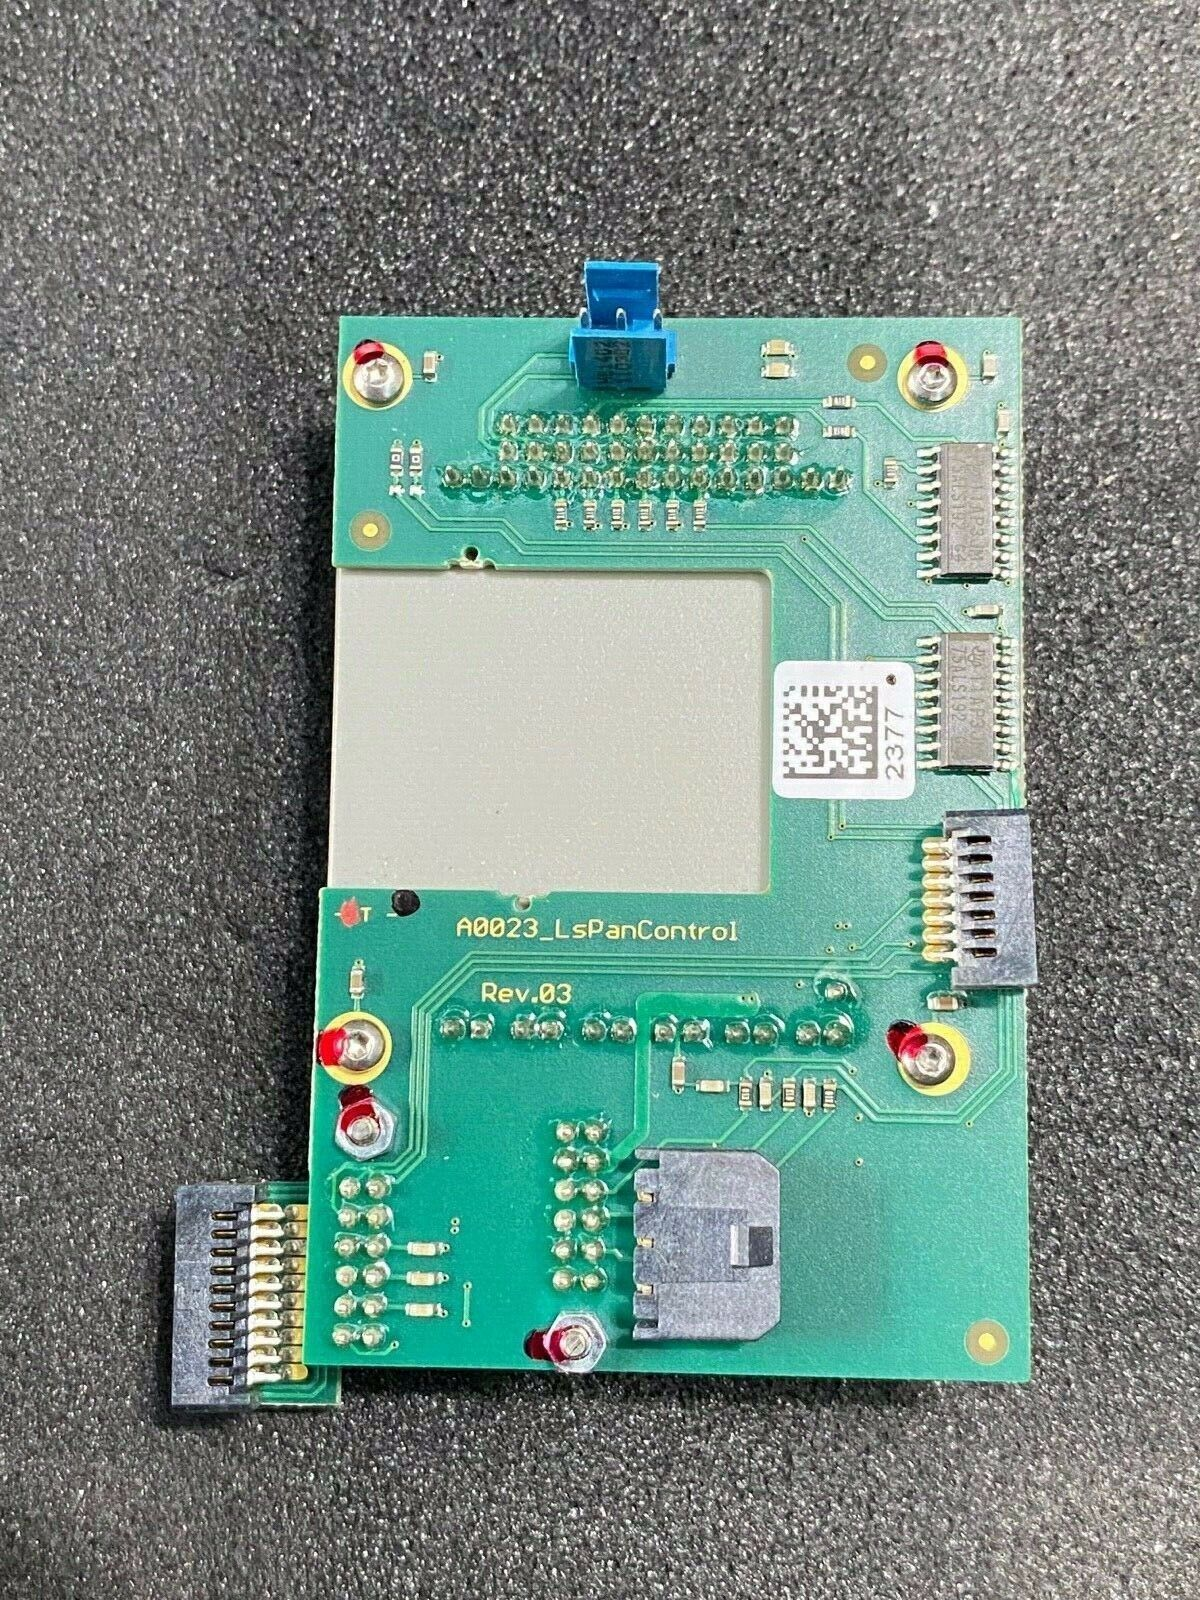 A0023 LsPan Control Board For Faro S120 3D Laser Scanner